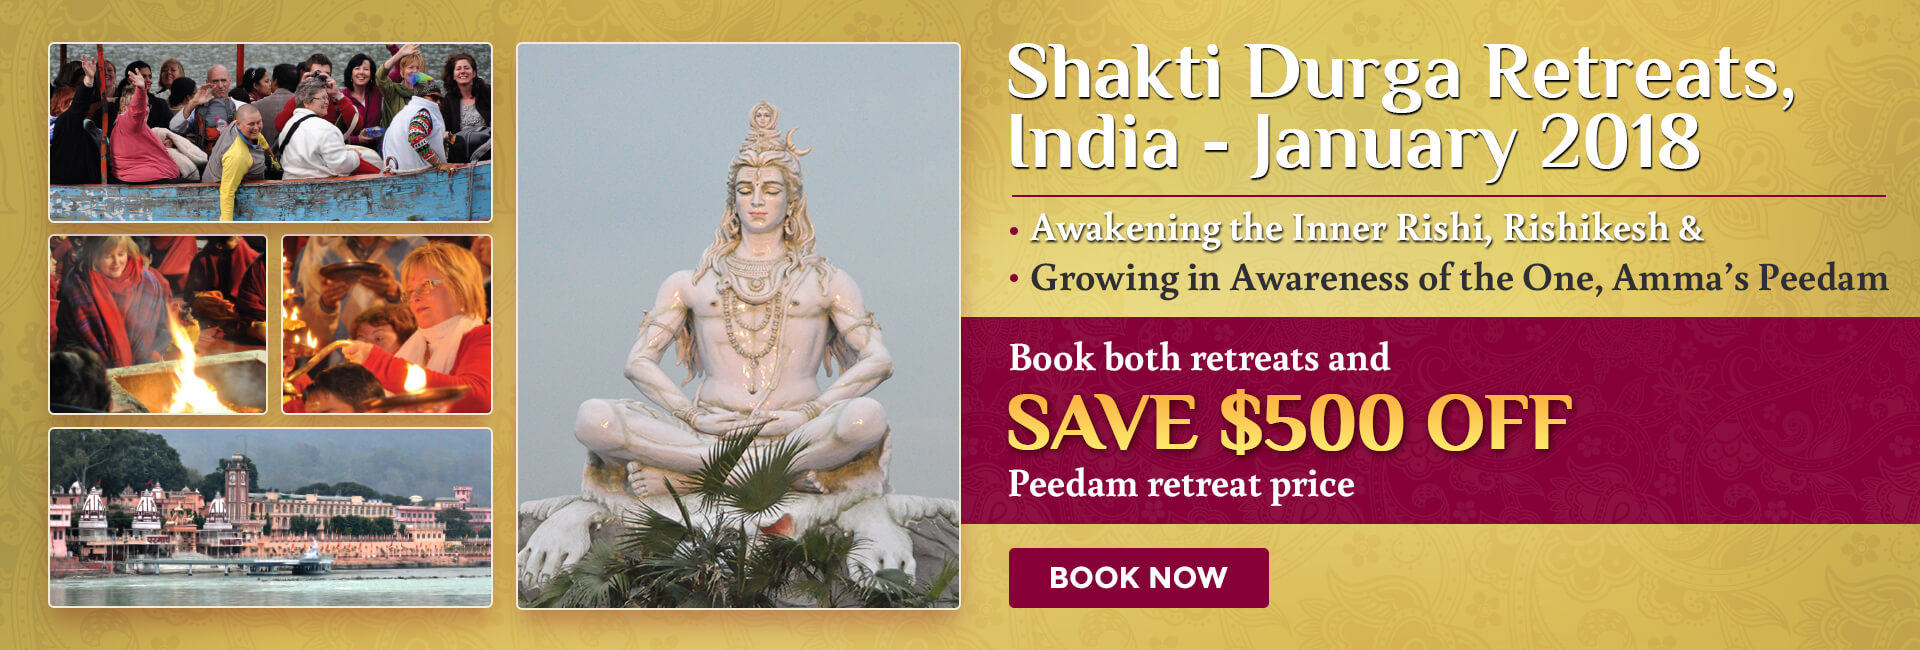 Shakti Durga India Retreats 2018